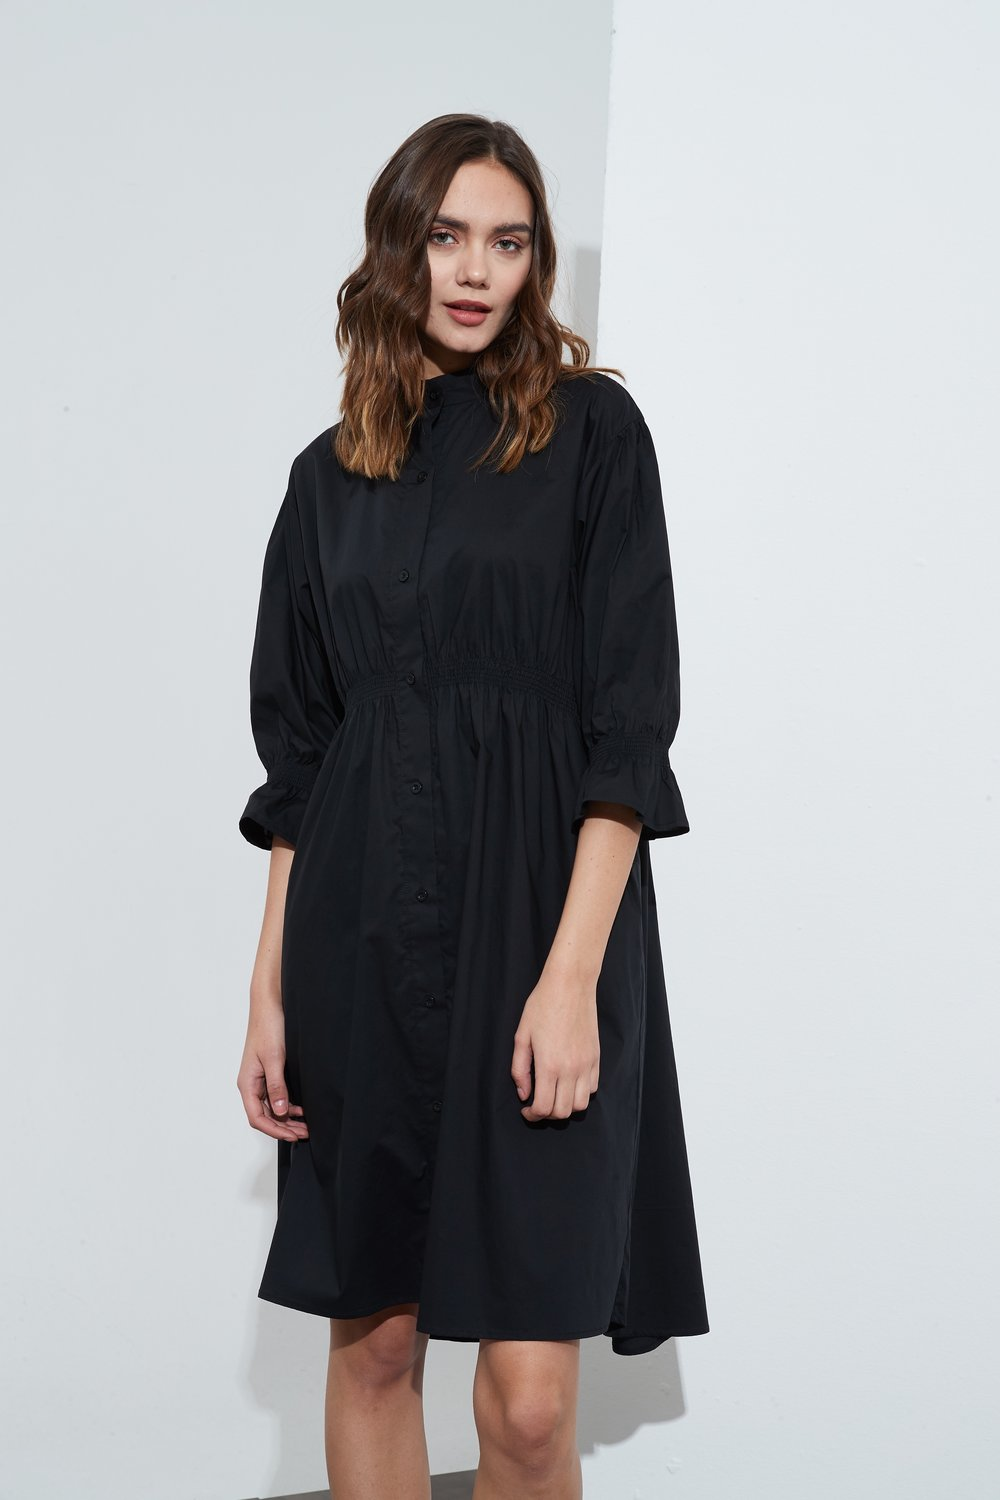 Tirelli Shirring Detail Dress Black